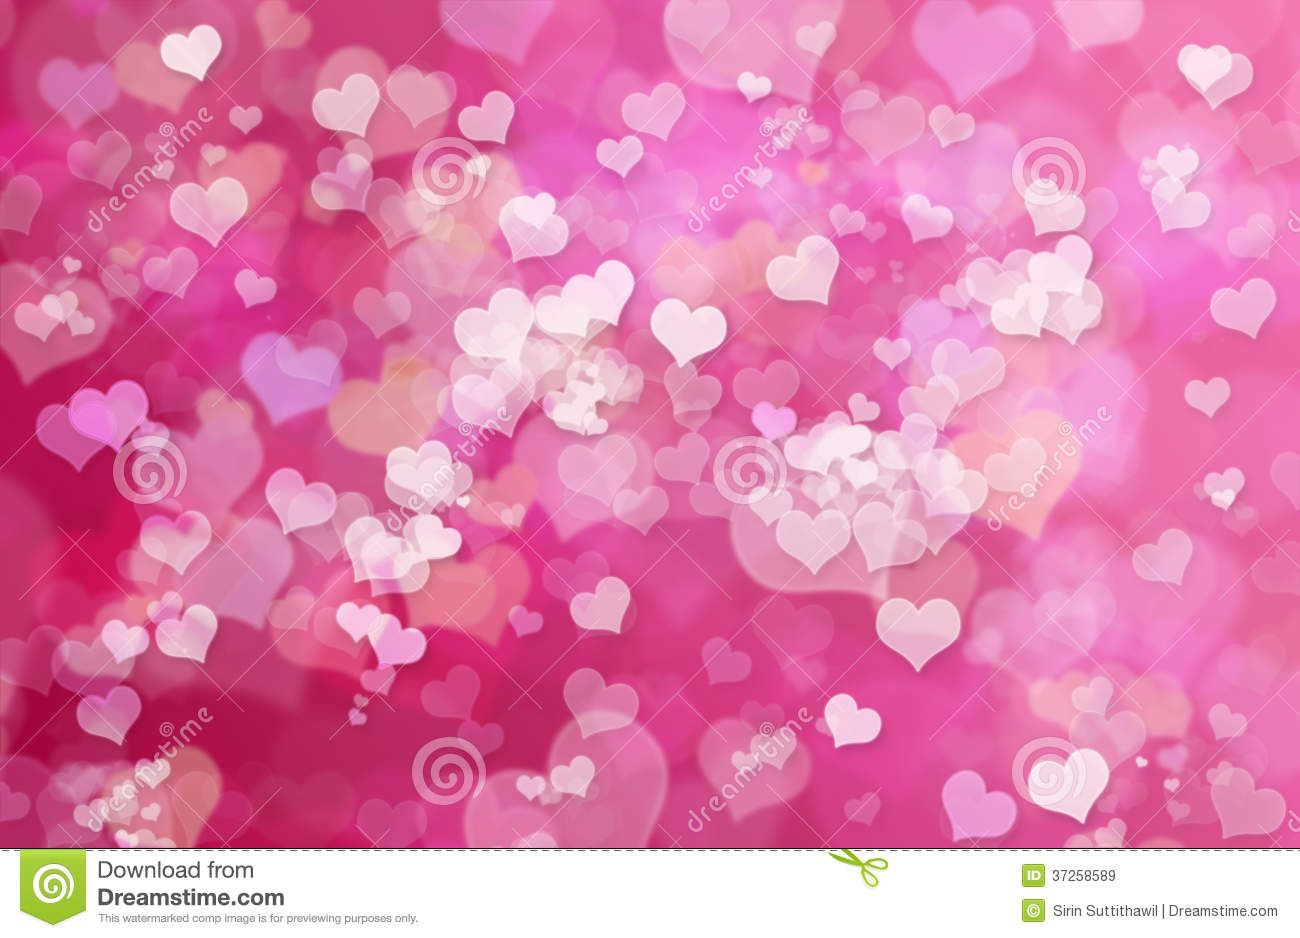 Valentine Hearts Abstract Pink Background: De Dagbehang van Valentine